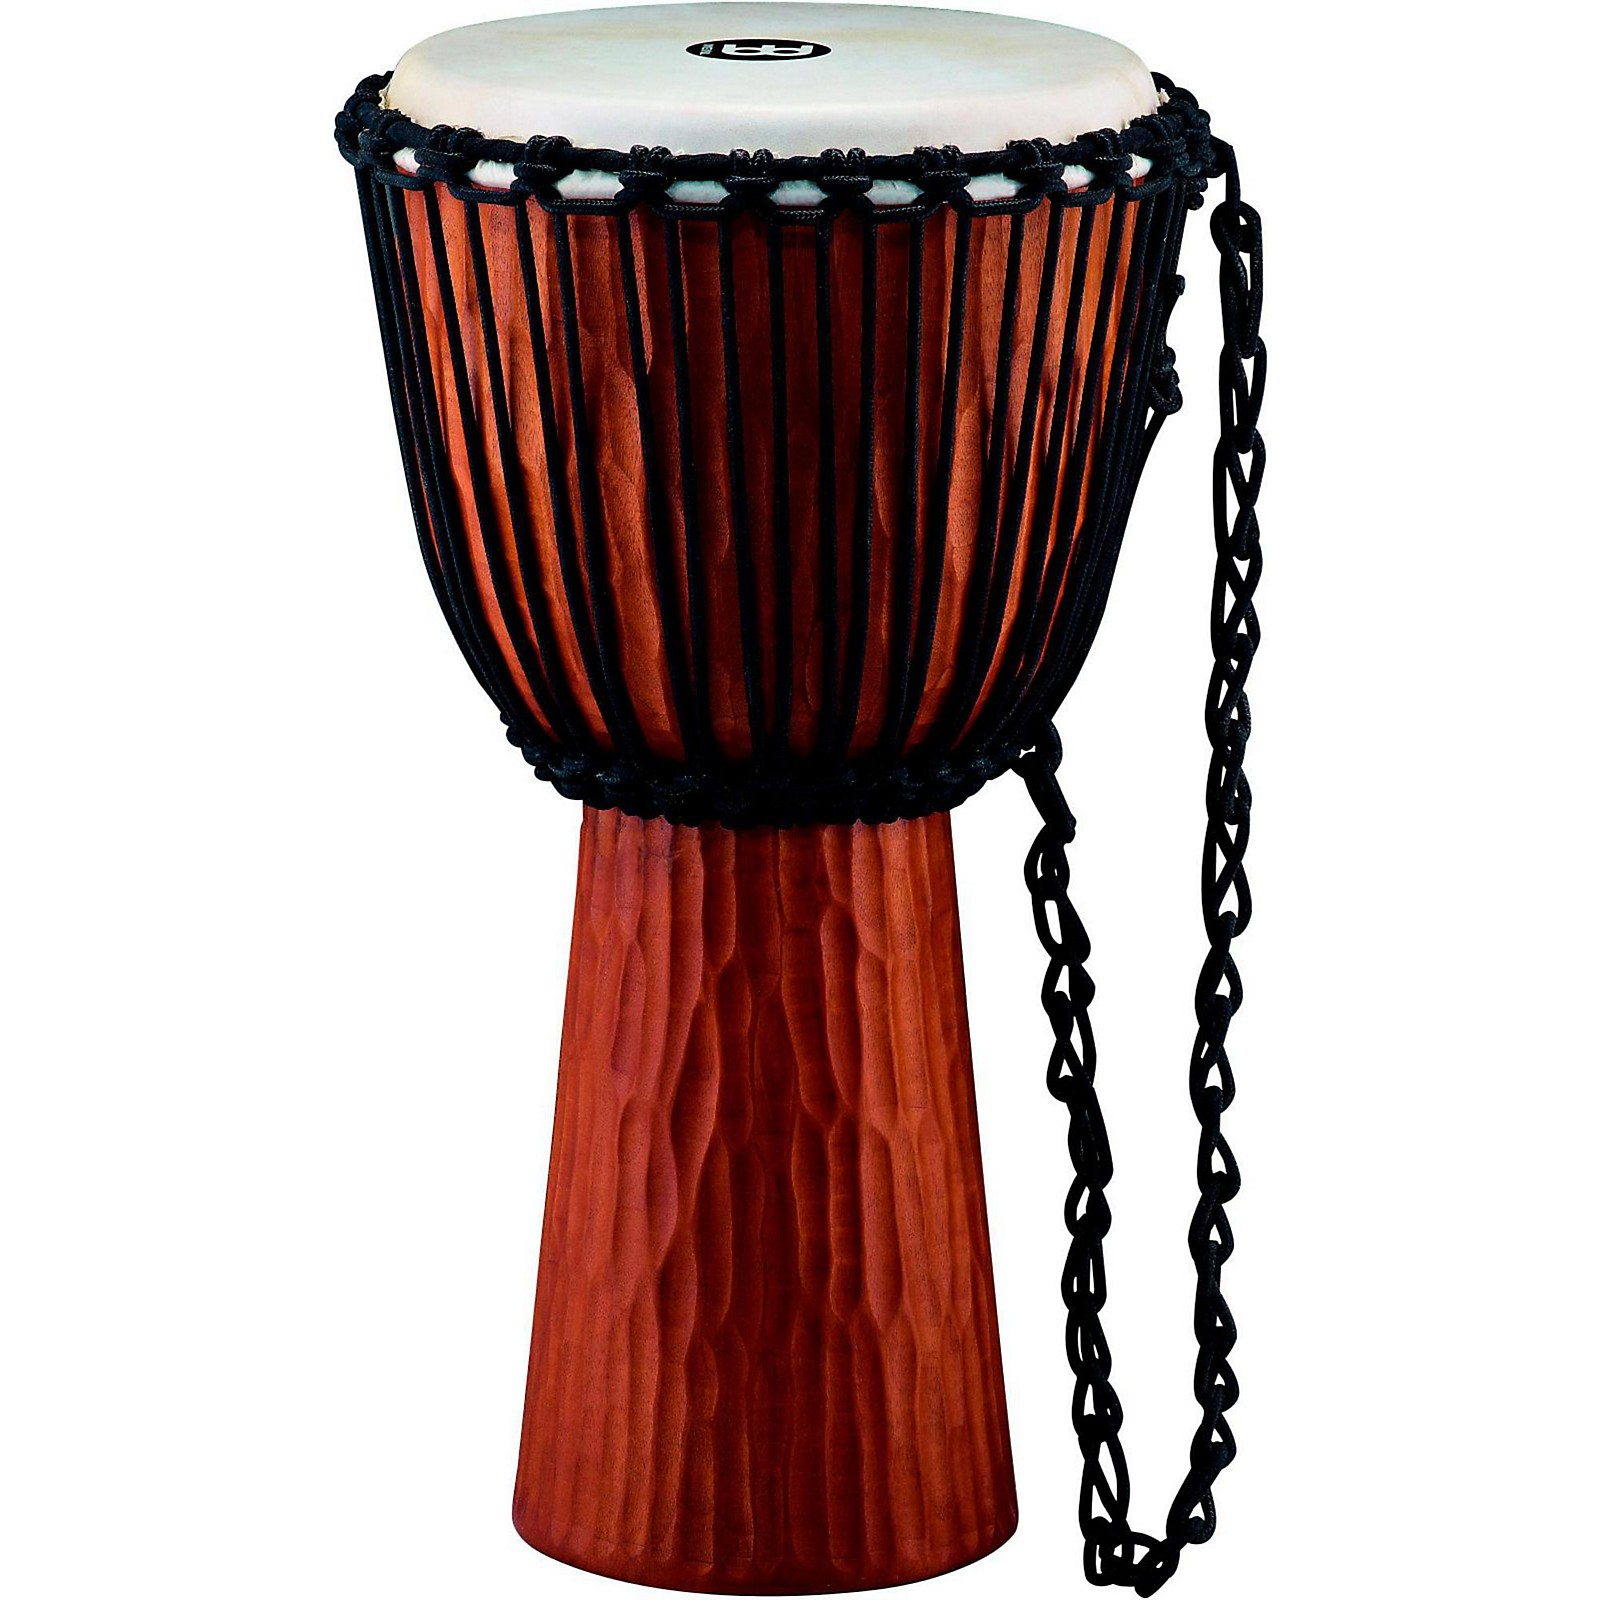 Meinl Headliner Nile Series Rope Tuned Djembe 13 In